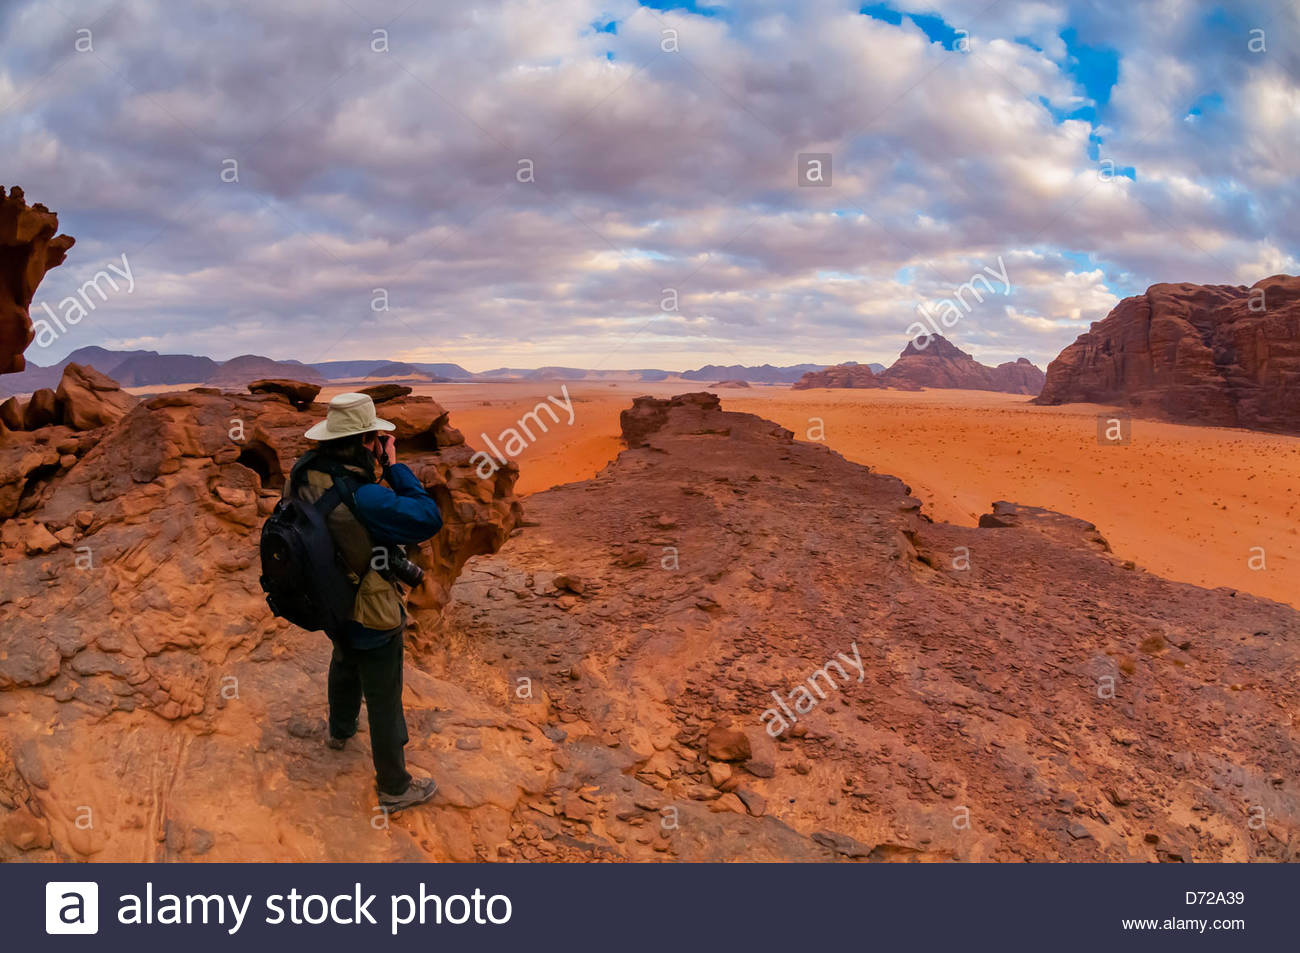 Image of: Camel Ride Travelers Enjoy Panoramic View Of The Arabian Desert At Wadi Rum Jordan Alamy Travelers Enjoy Panoramic View Of The Arabian Desert At Wadi Rum